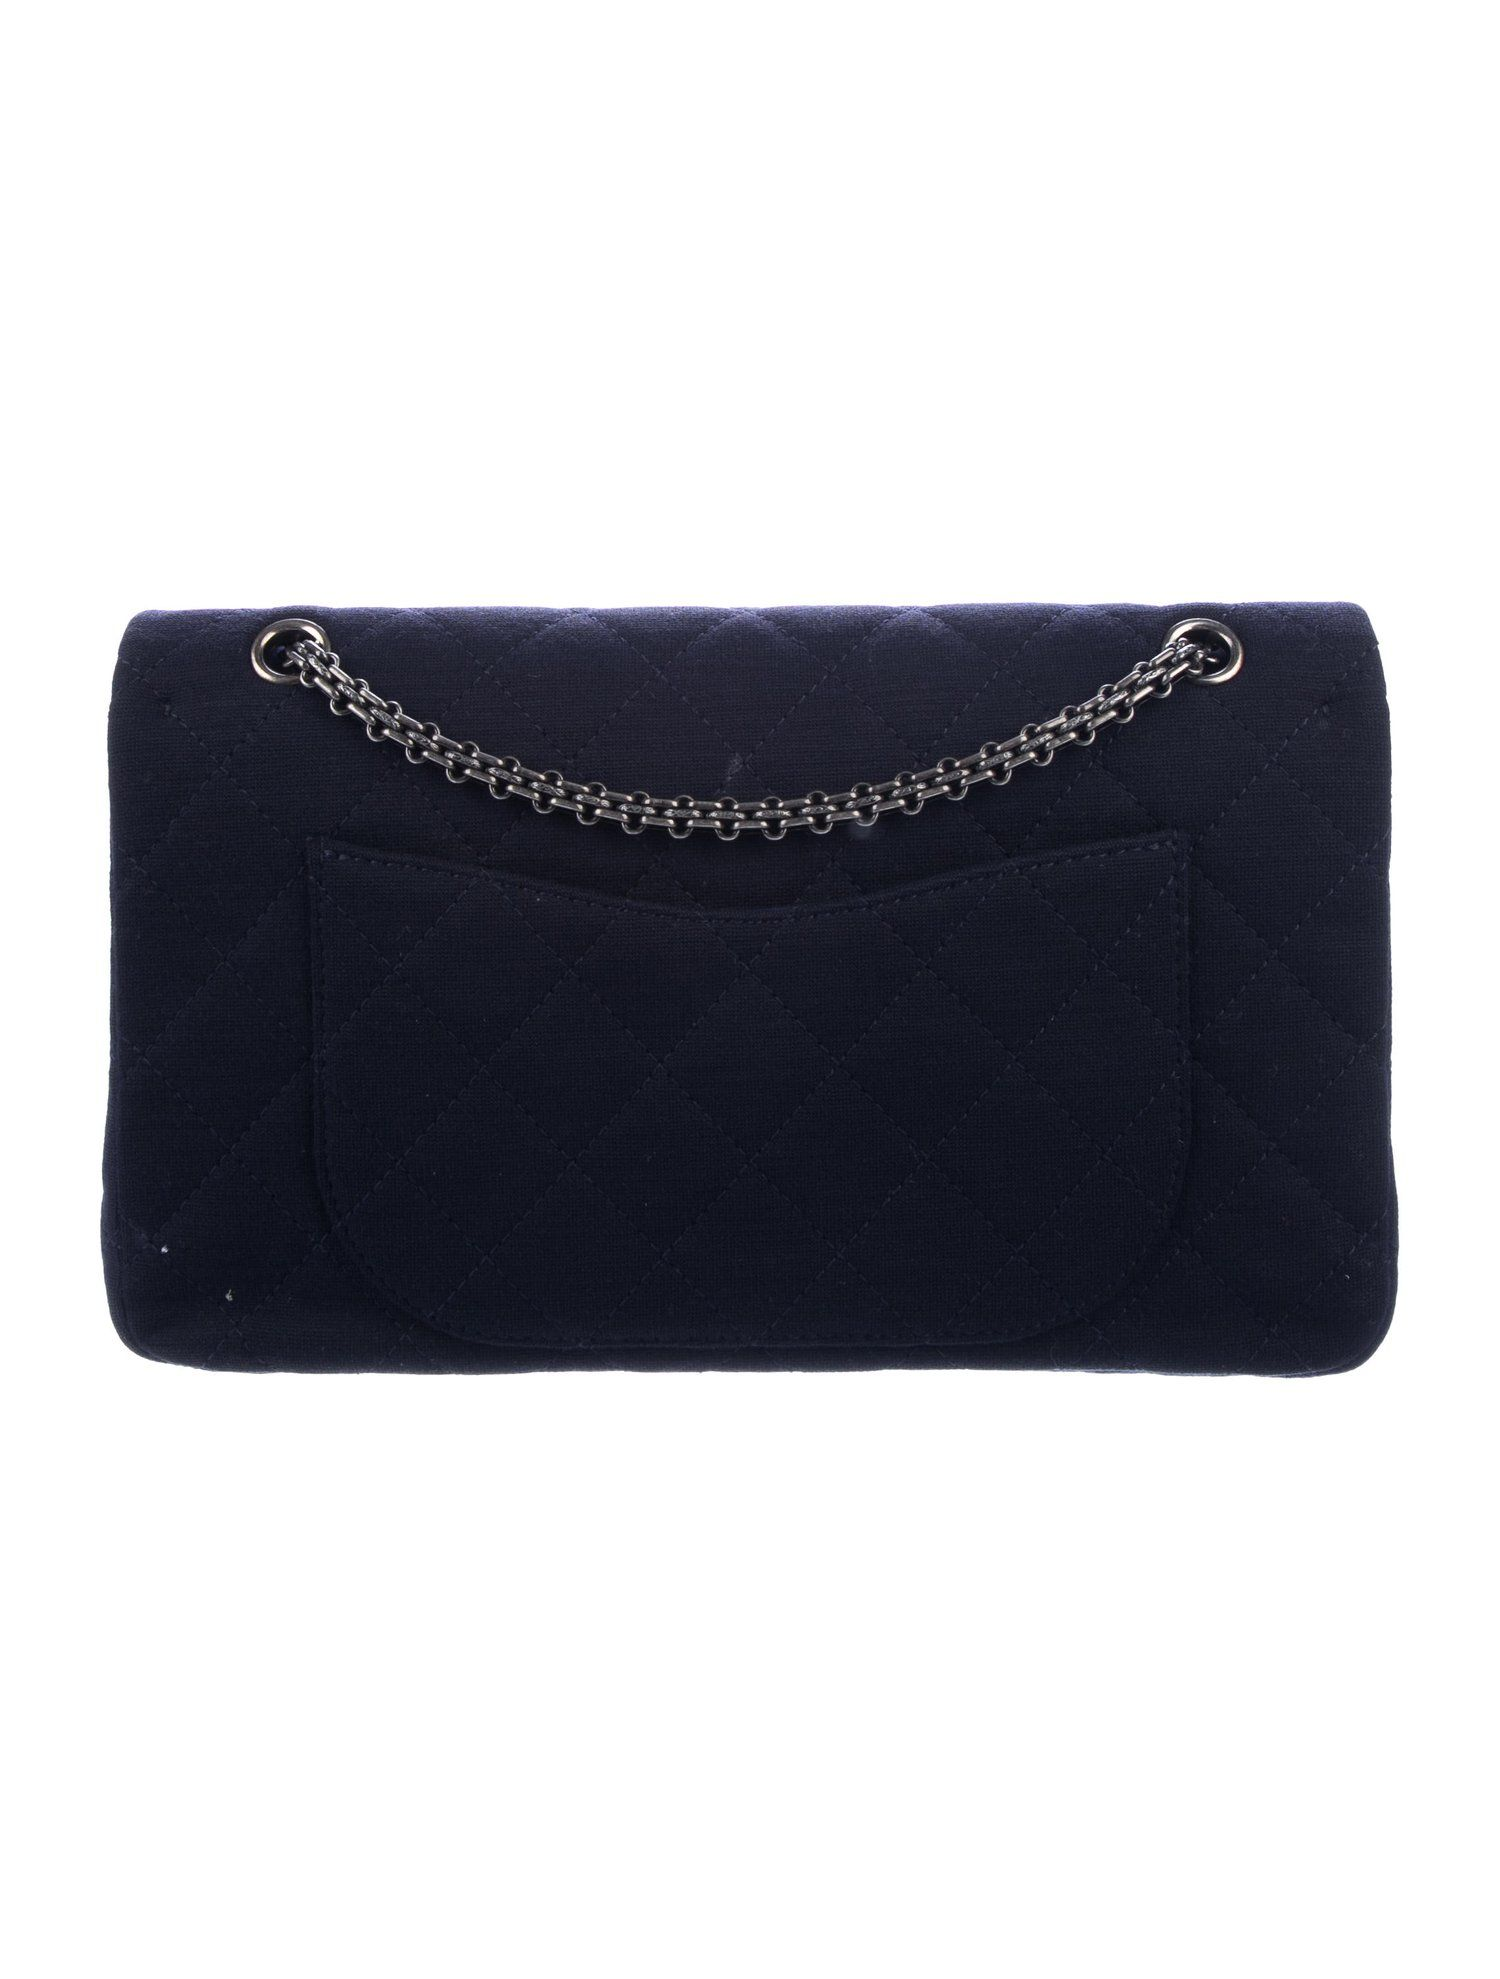 7e476dc65fb599 Jersey Reissue 227 Double Flap Bag in 2019 | Styles Inspiration Chic ...